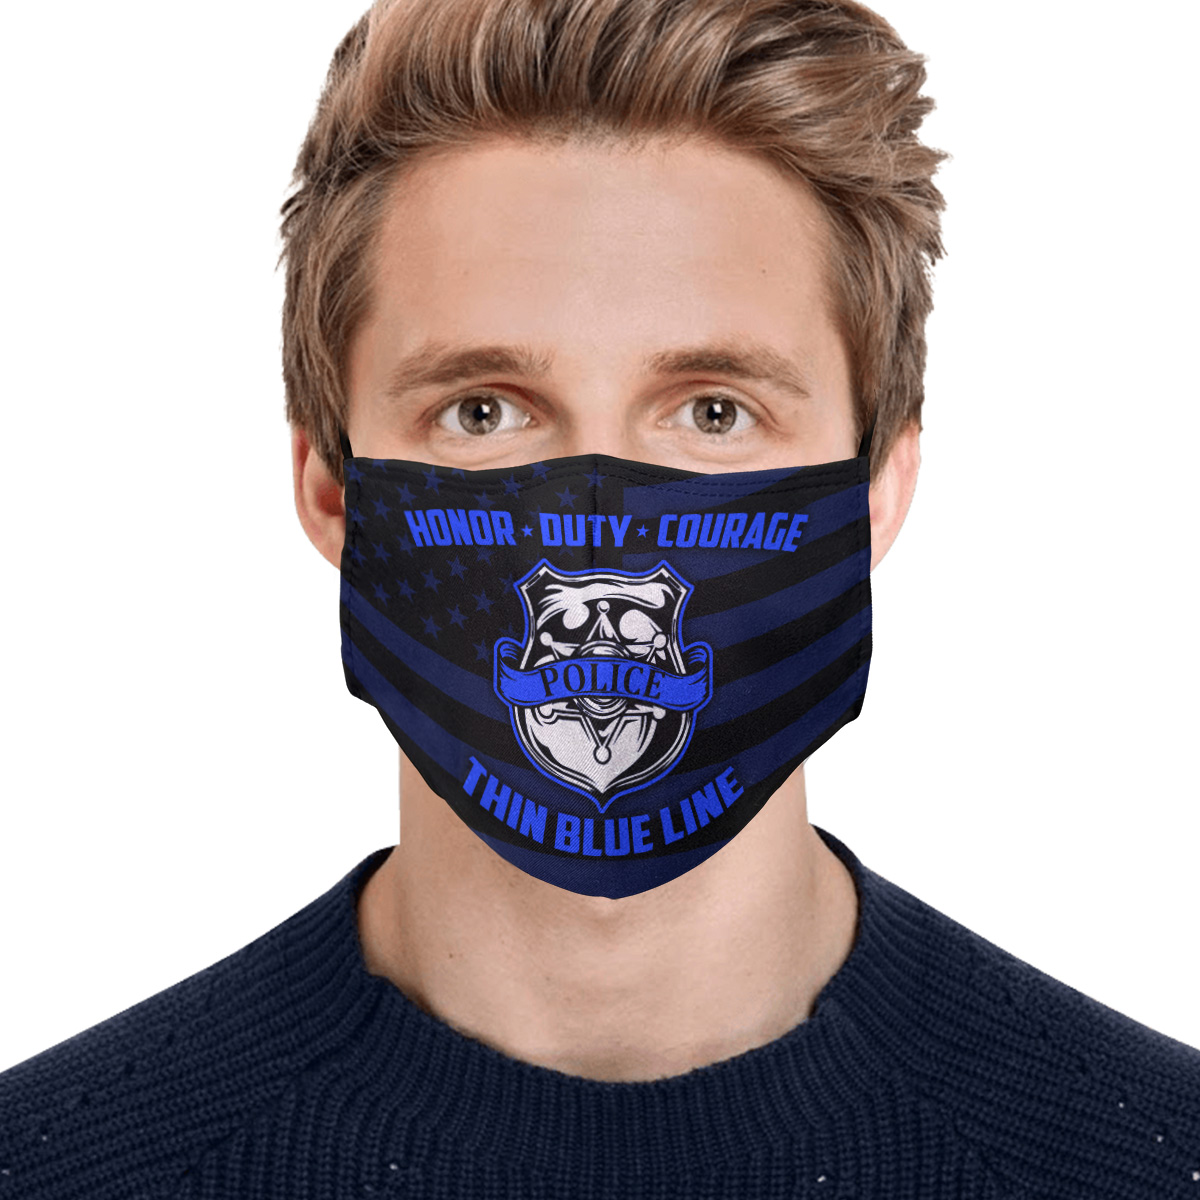 Honor duty courage police back thin blue line face mask 4